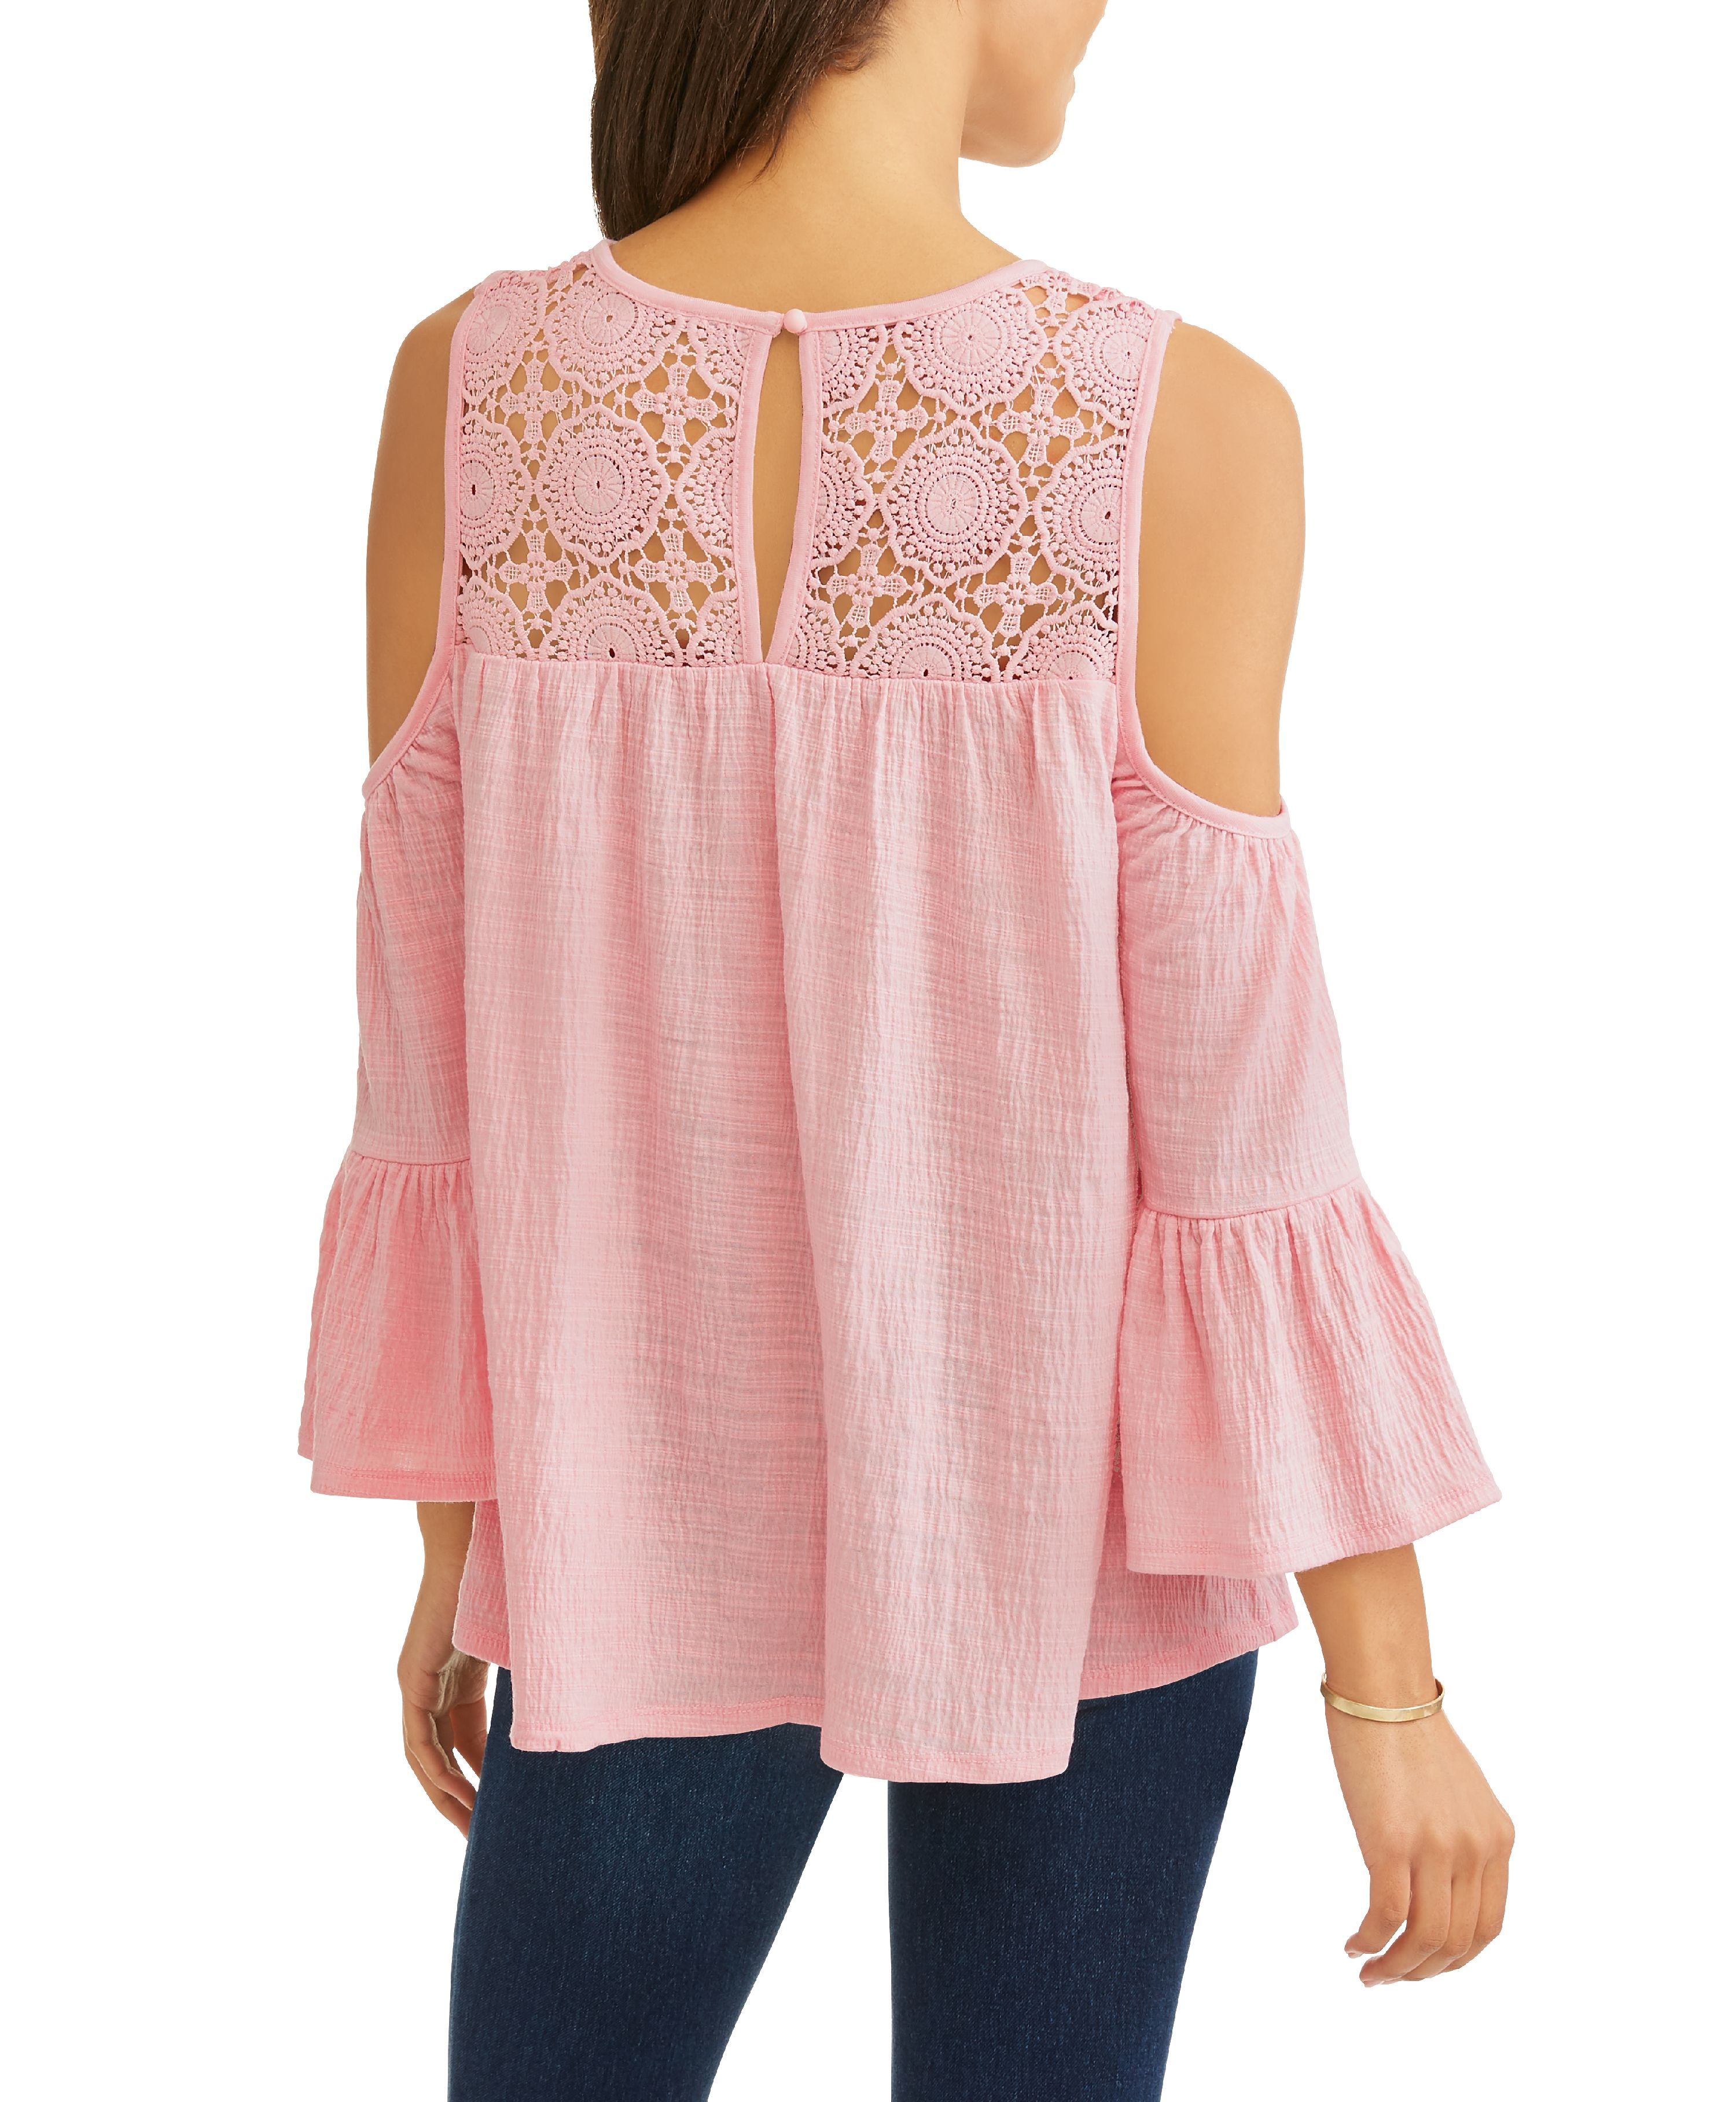 88f466922bb269 Time and Tru - Women s Long Sleeve Lace Cold Shoulder Peasant Top ...